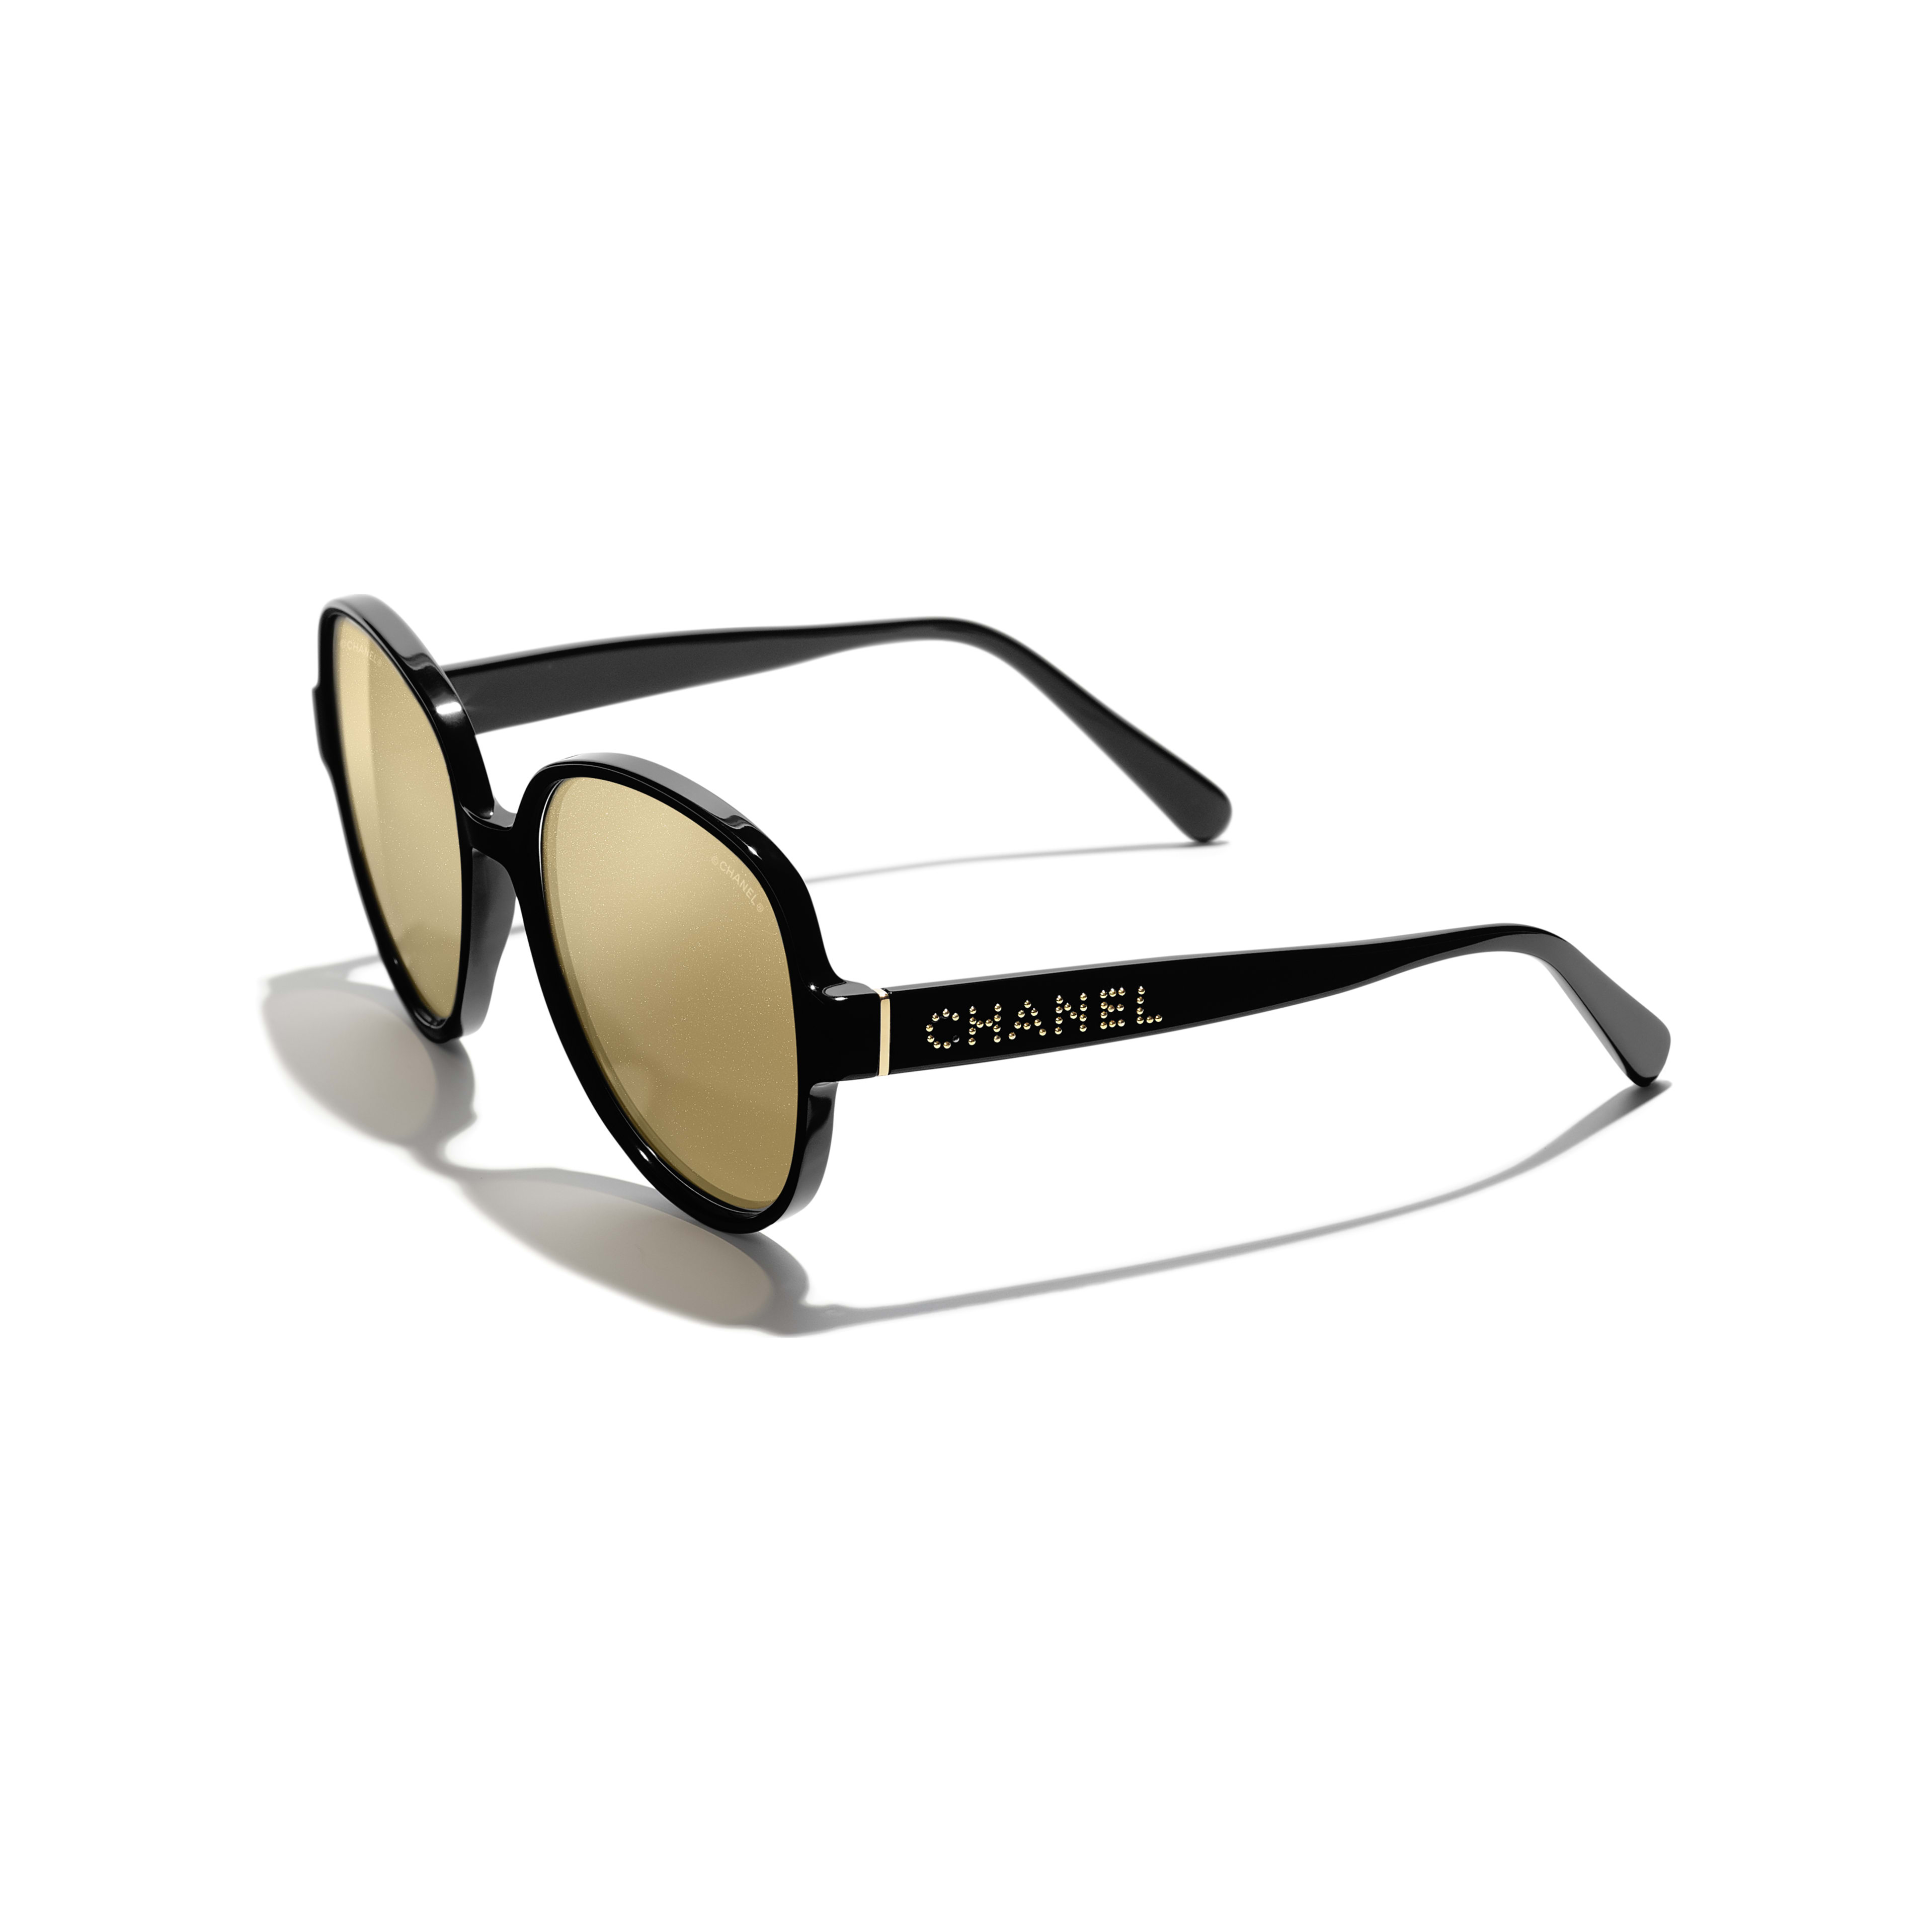 Pilot Sunglasses - Black - Acetate - Extra view - see full sized version